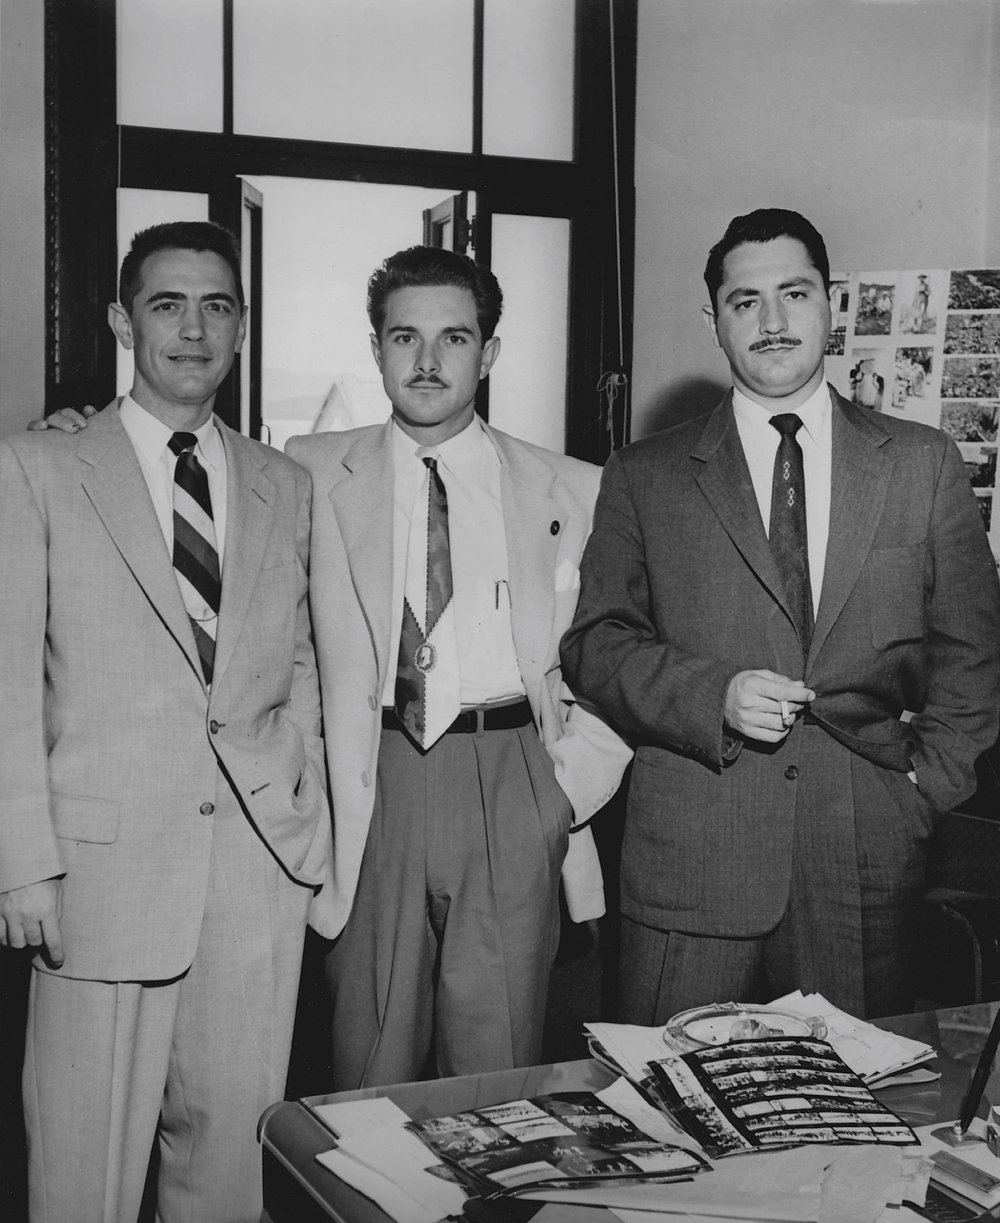 CIA agents (including my grandfather, John, left) in Guatemala, 1954